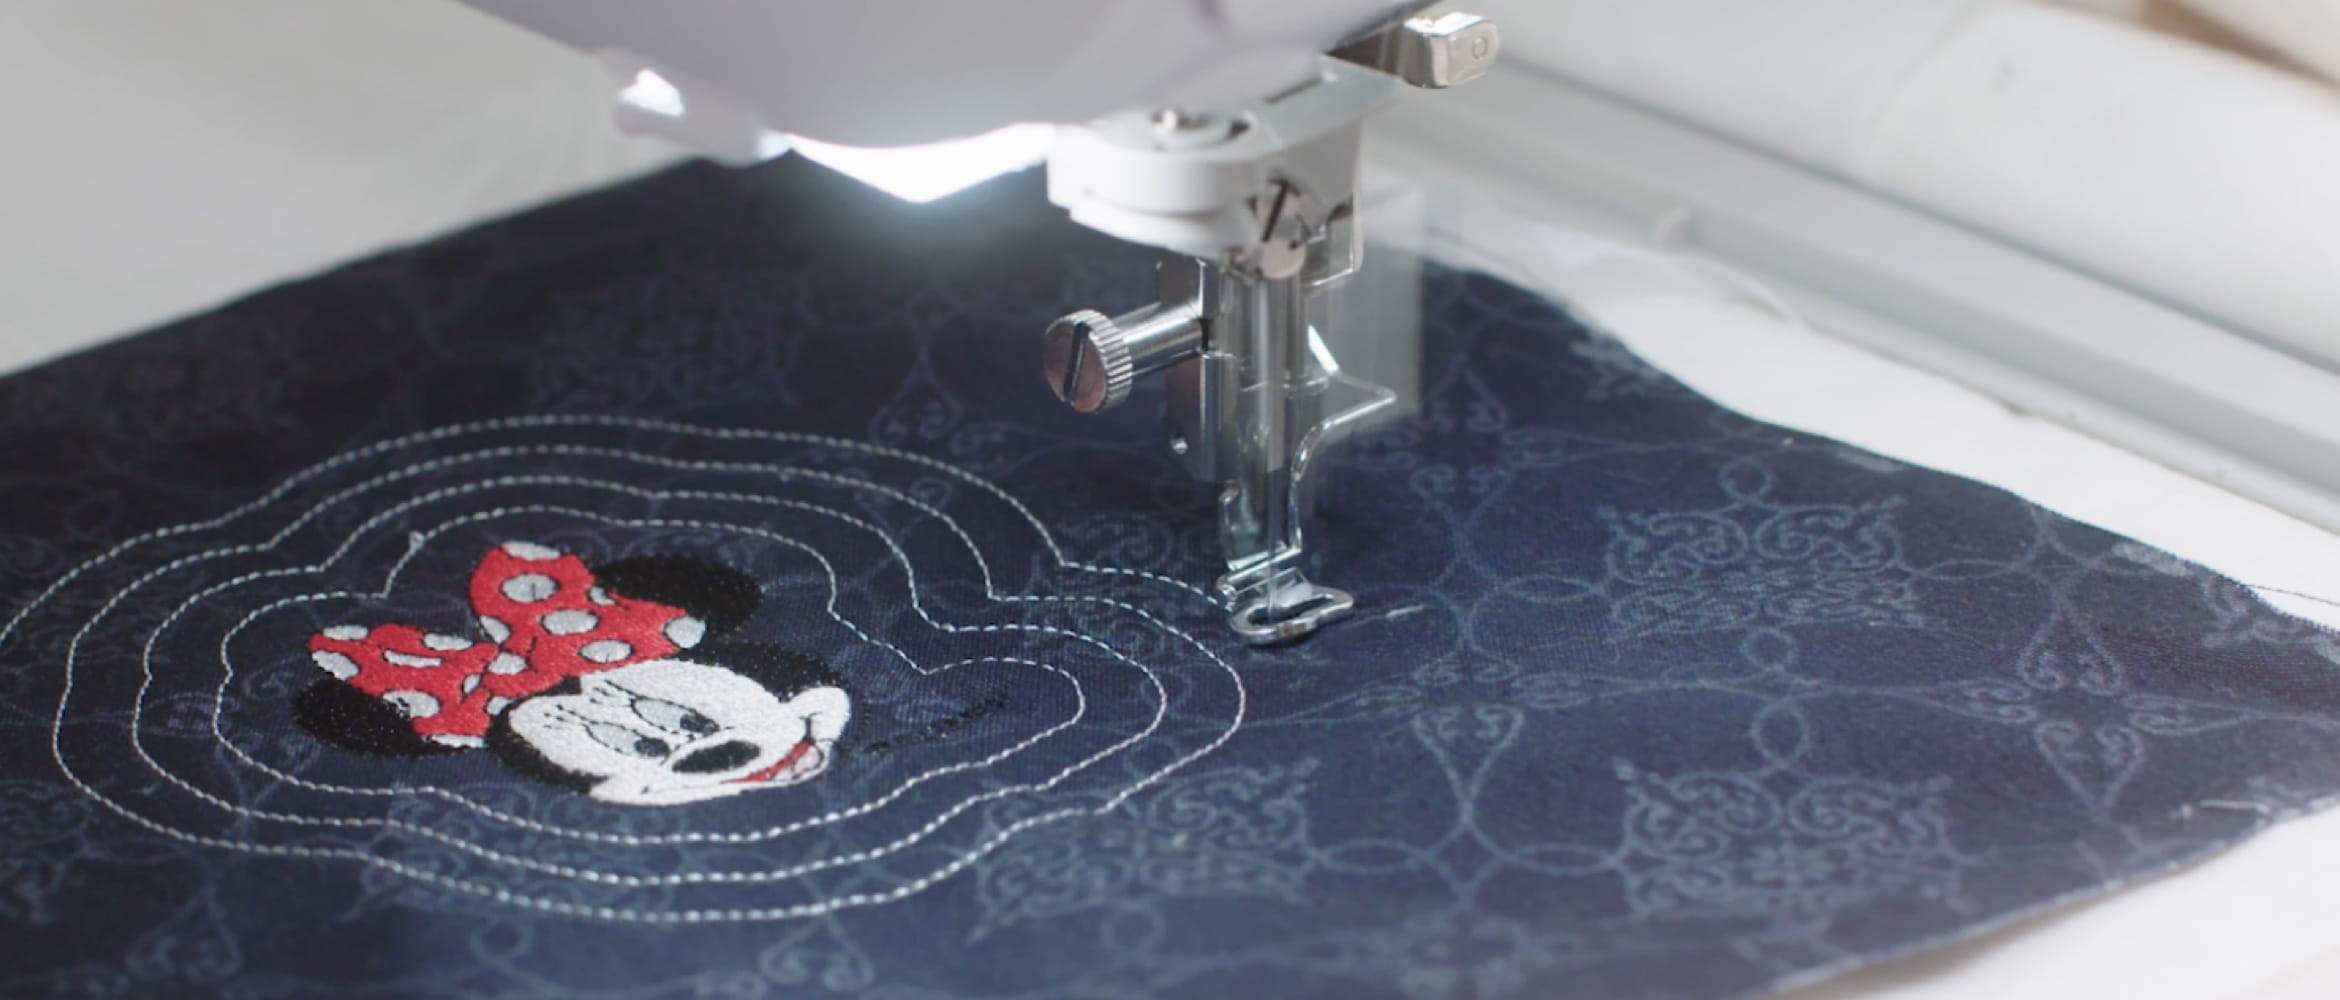 Broderie de Minnie Mouse